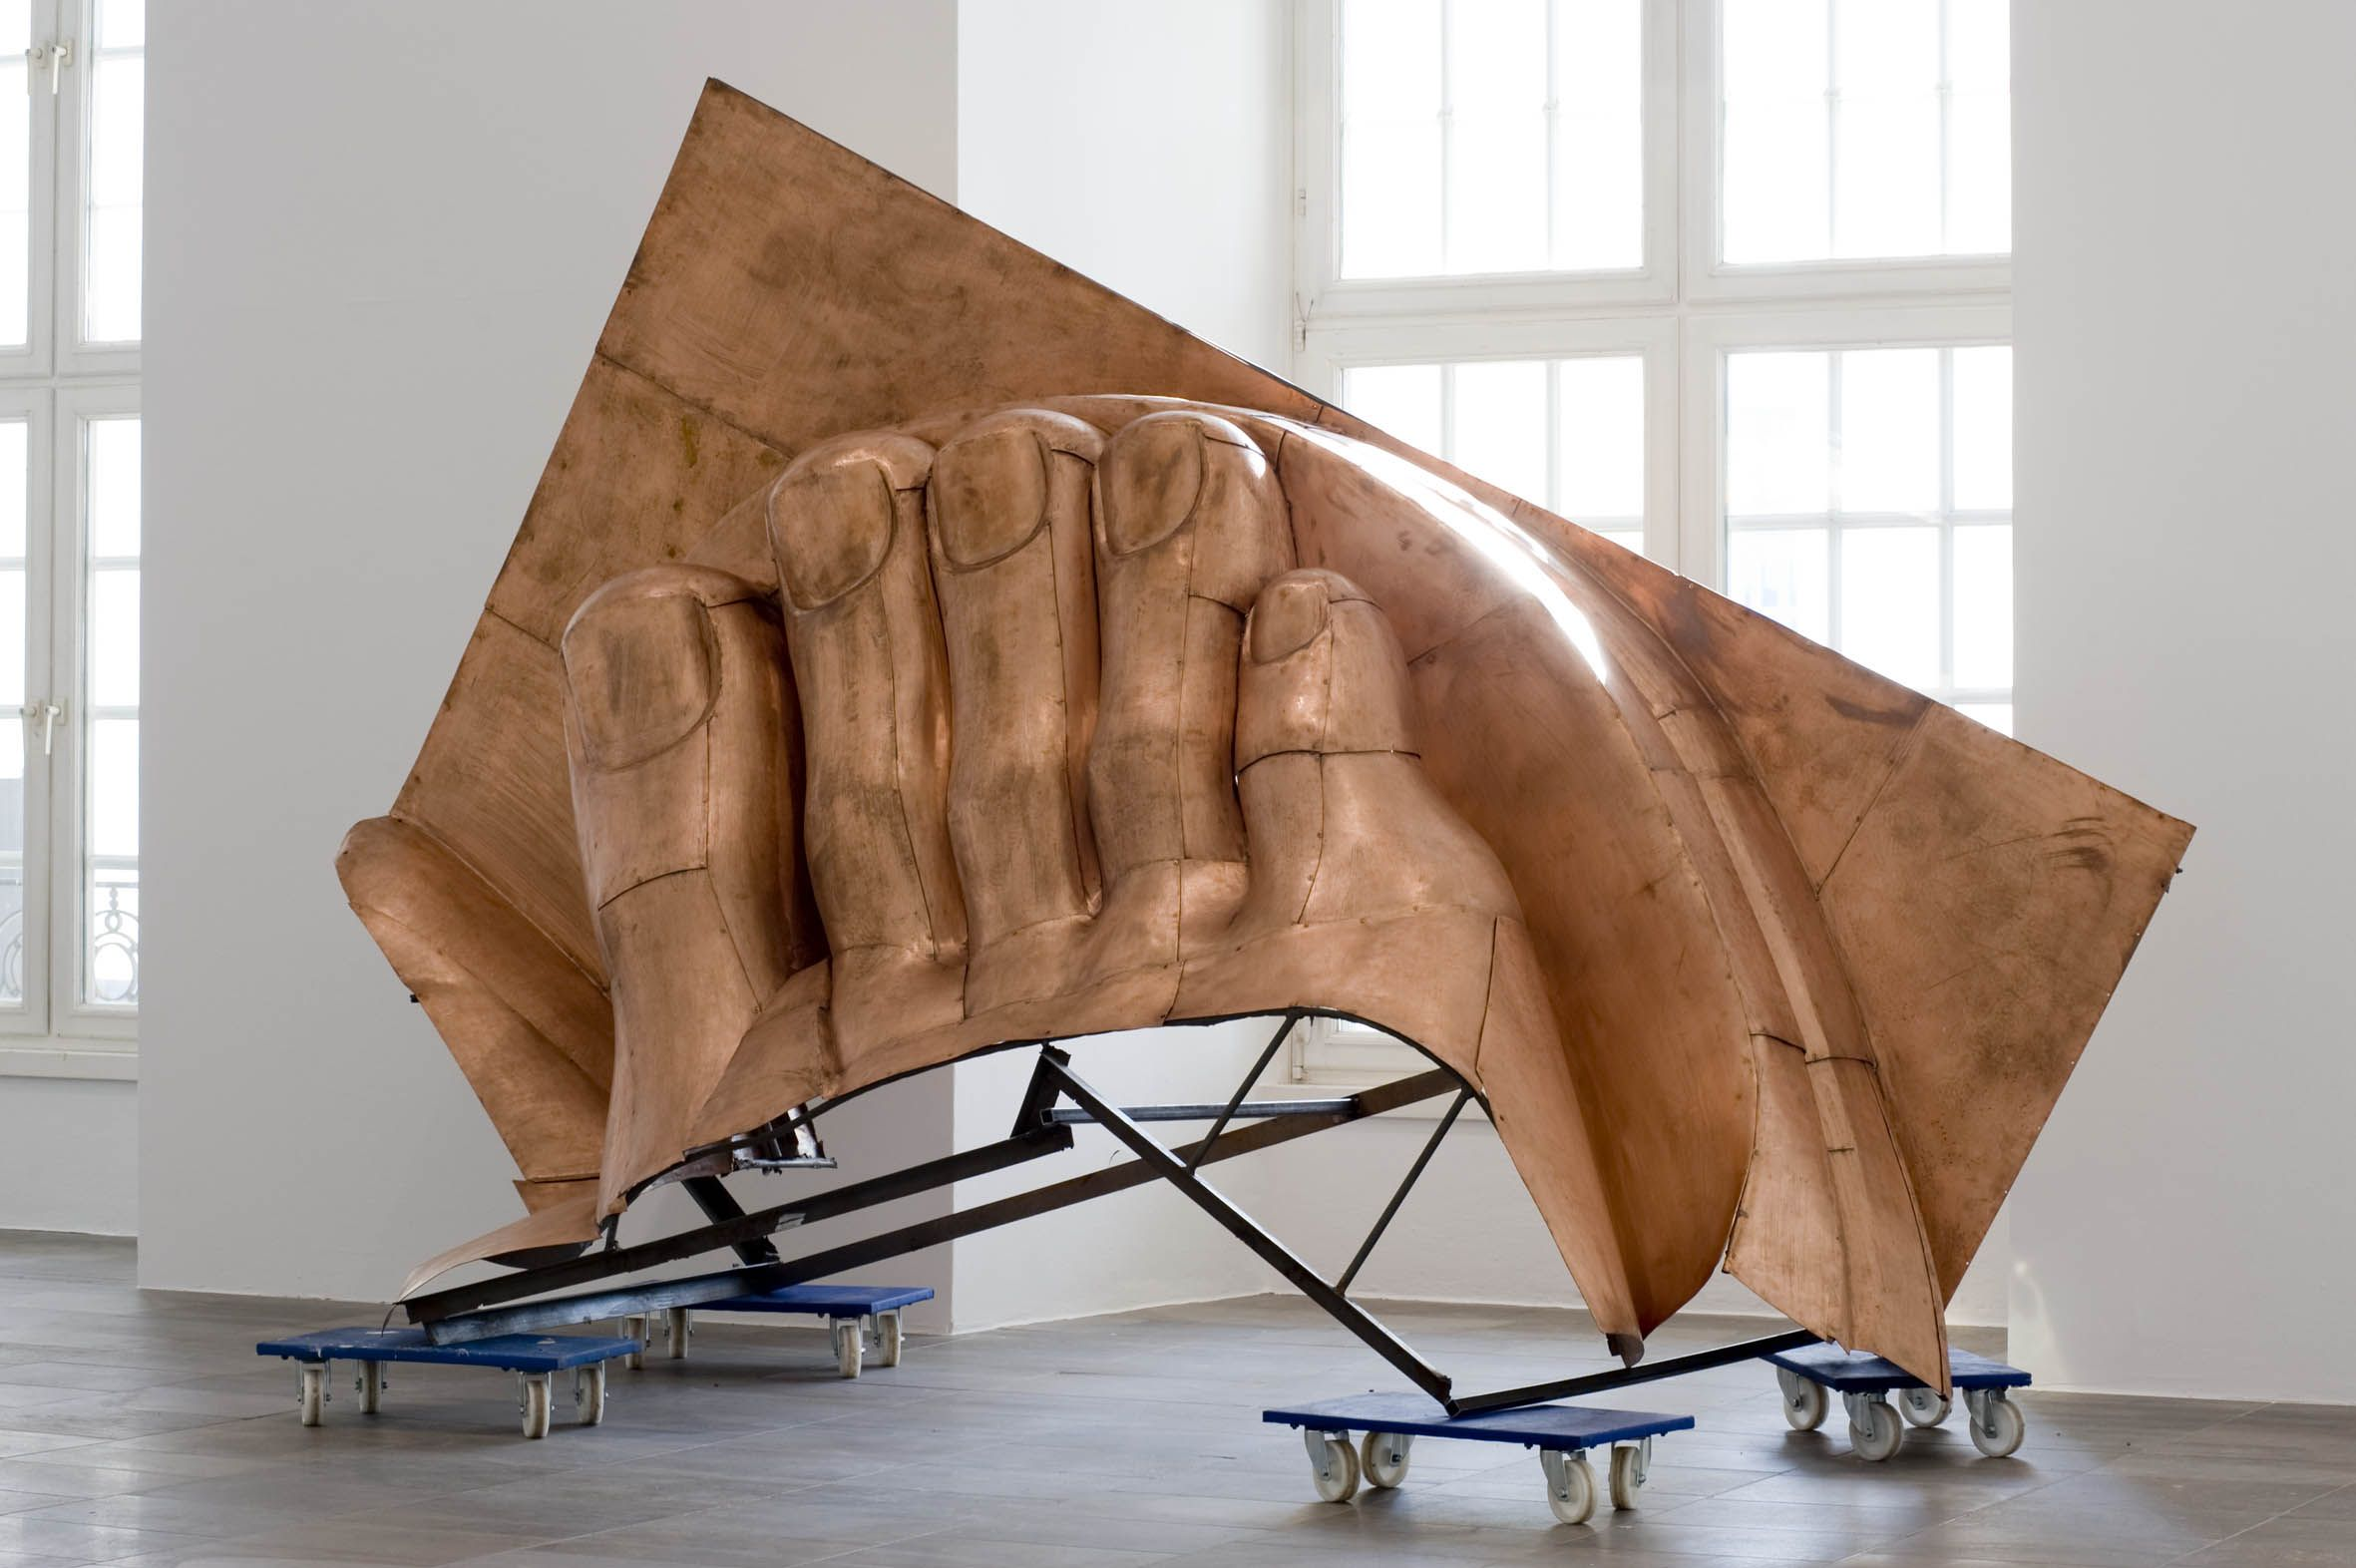 Danh Vo, WE THE PEOPLE (detail), 2011. Courtesy of Galerie Chantal Crousel. Photo: Nils Klinger